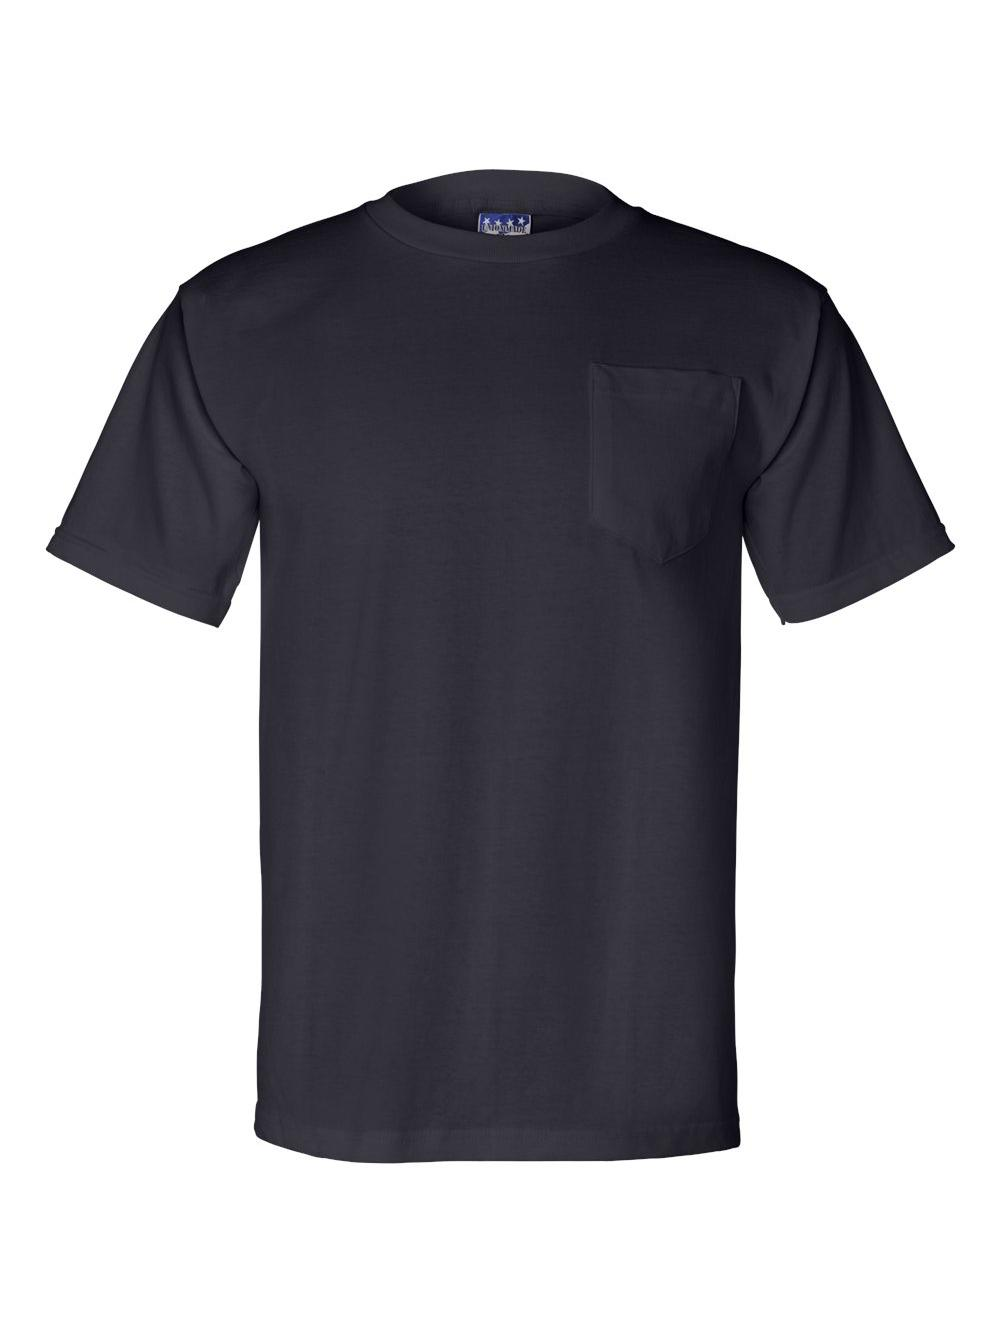 Bayside-Union-Made-Short-Sleeve-T-Shirt-with-a-Pocket-3015 thumbnail 18